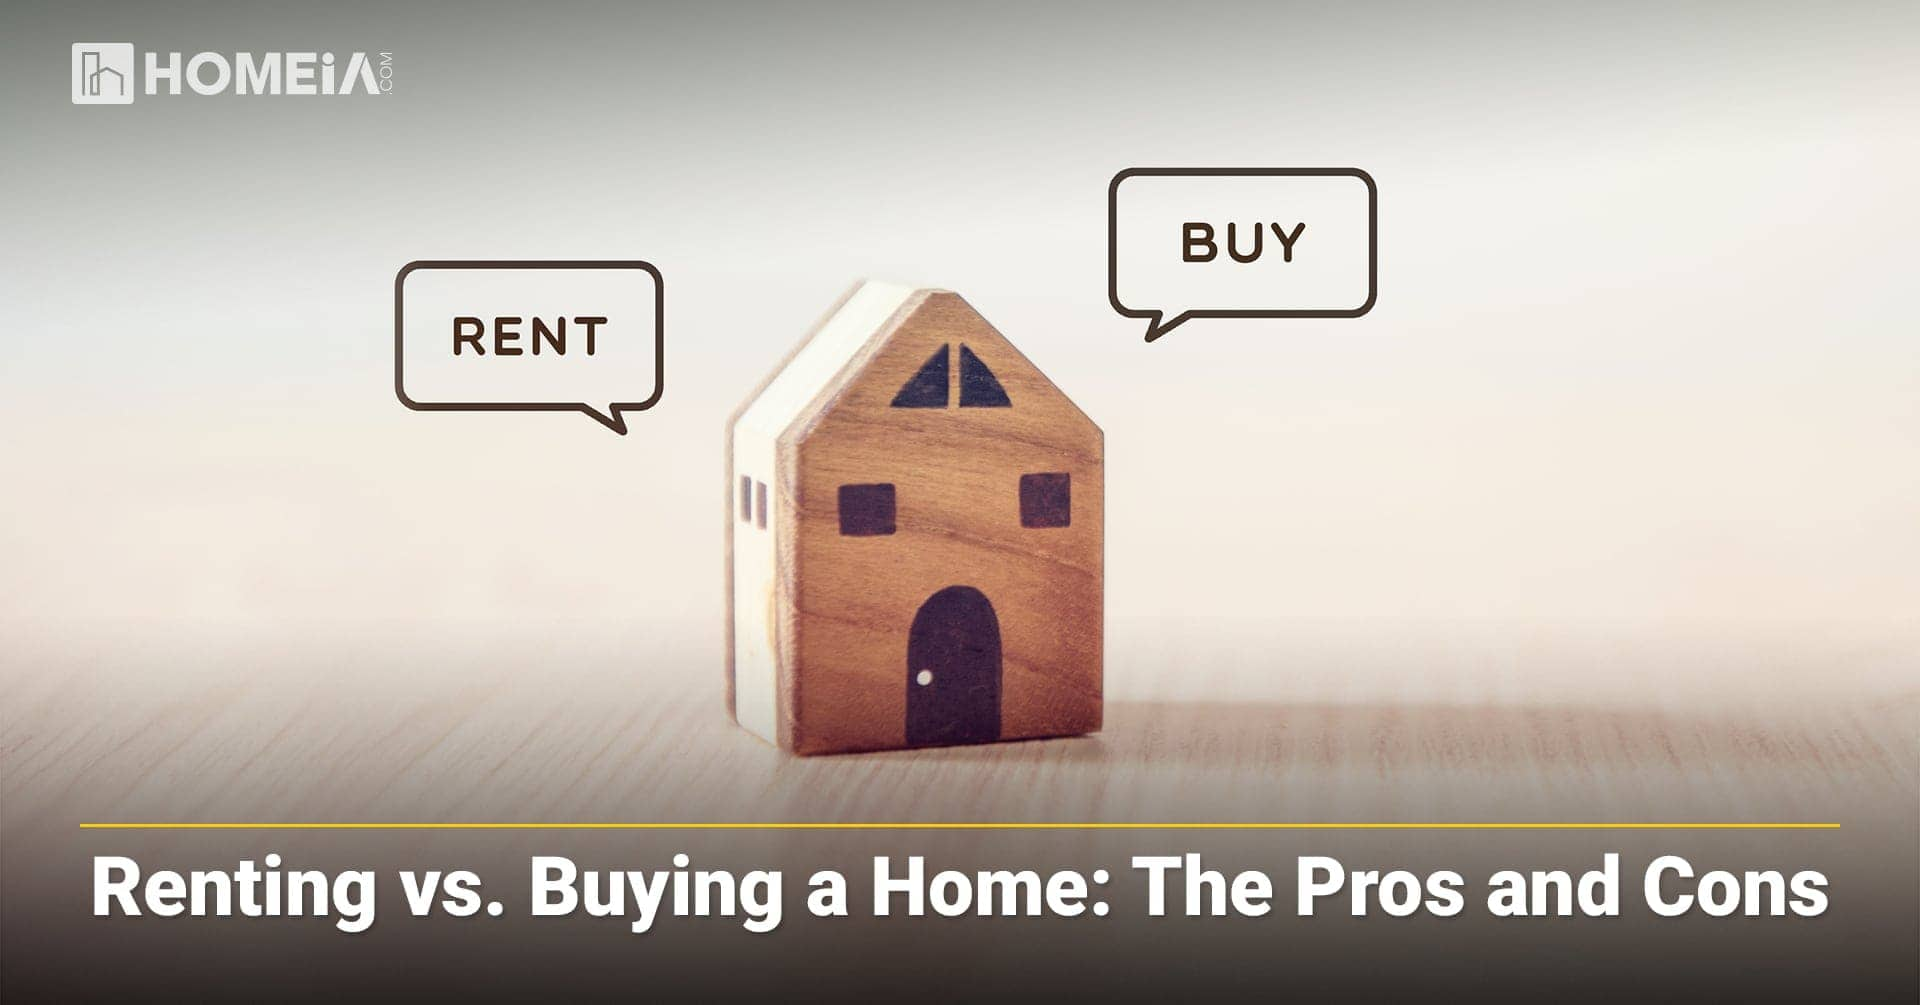 Renting vs. Buying a Home: The Pros and Cons